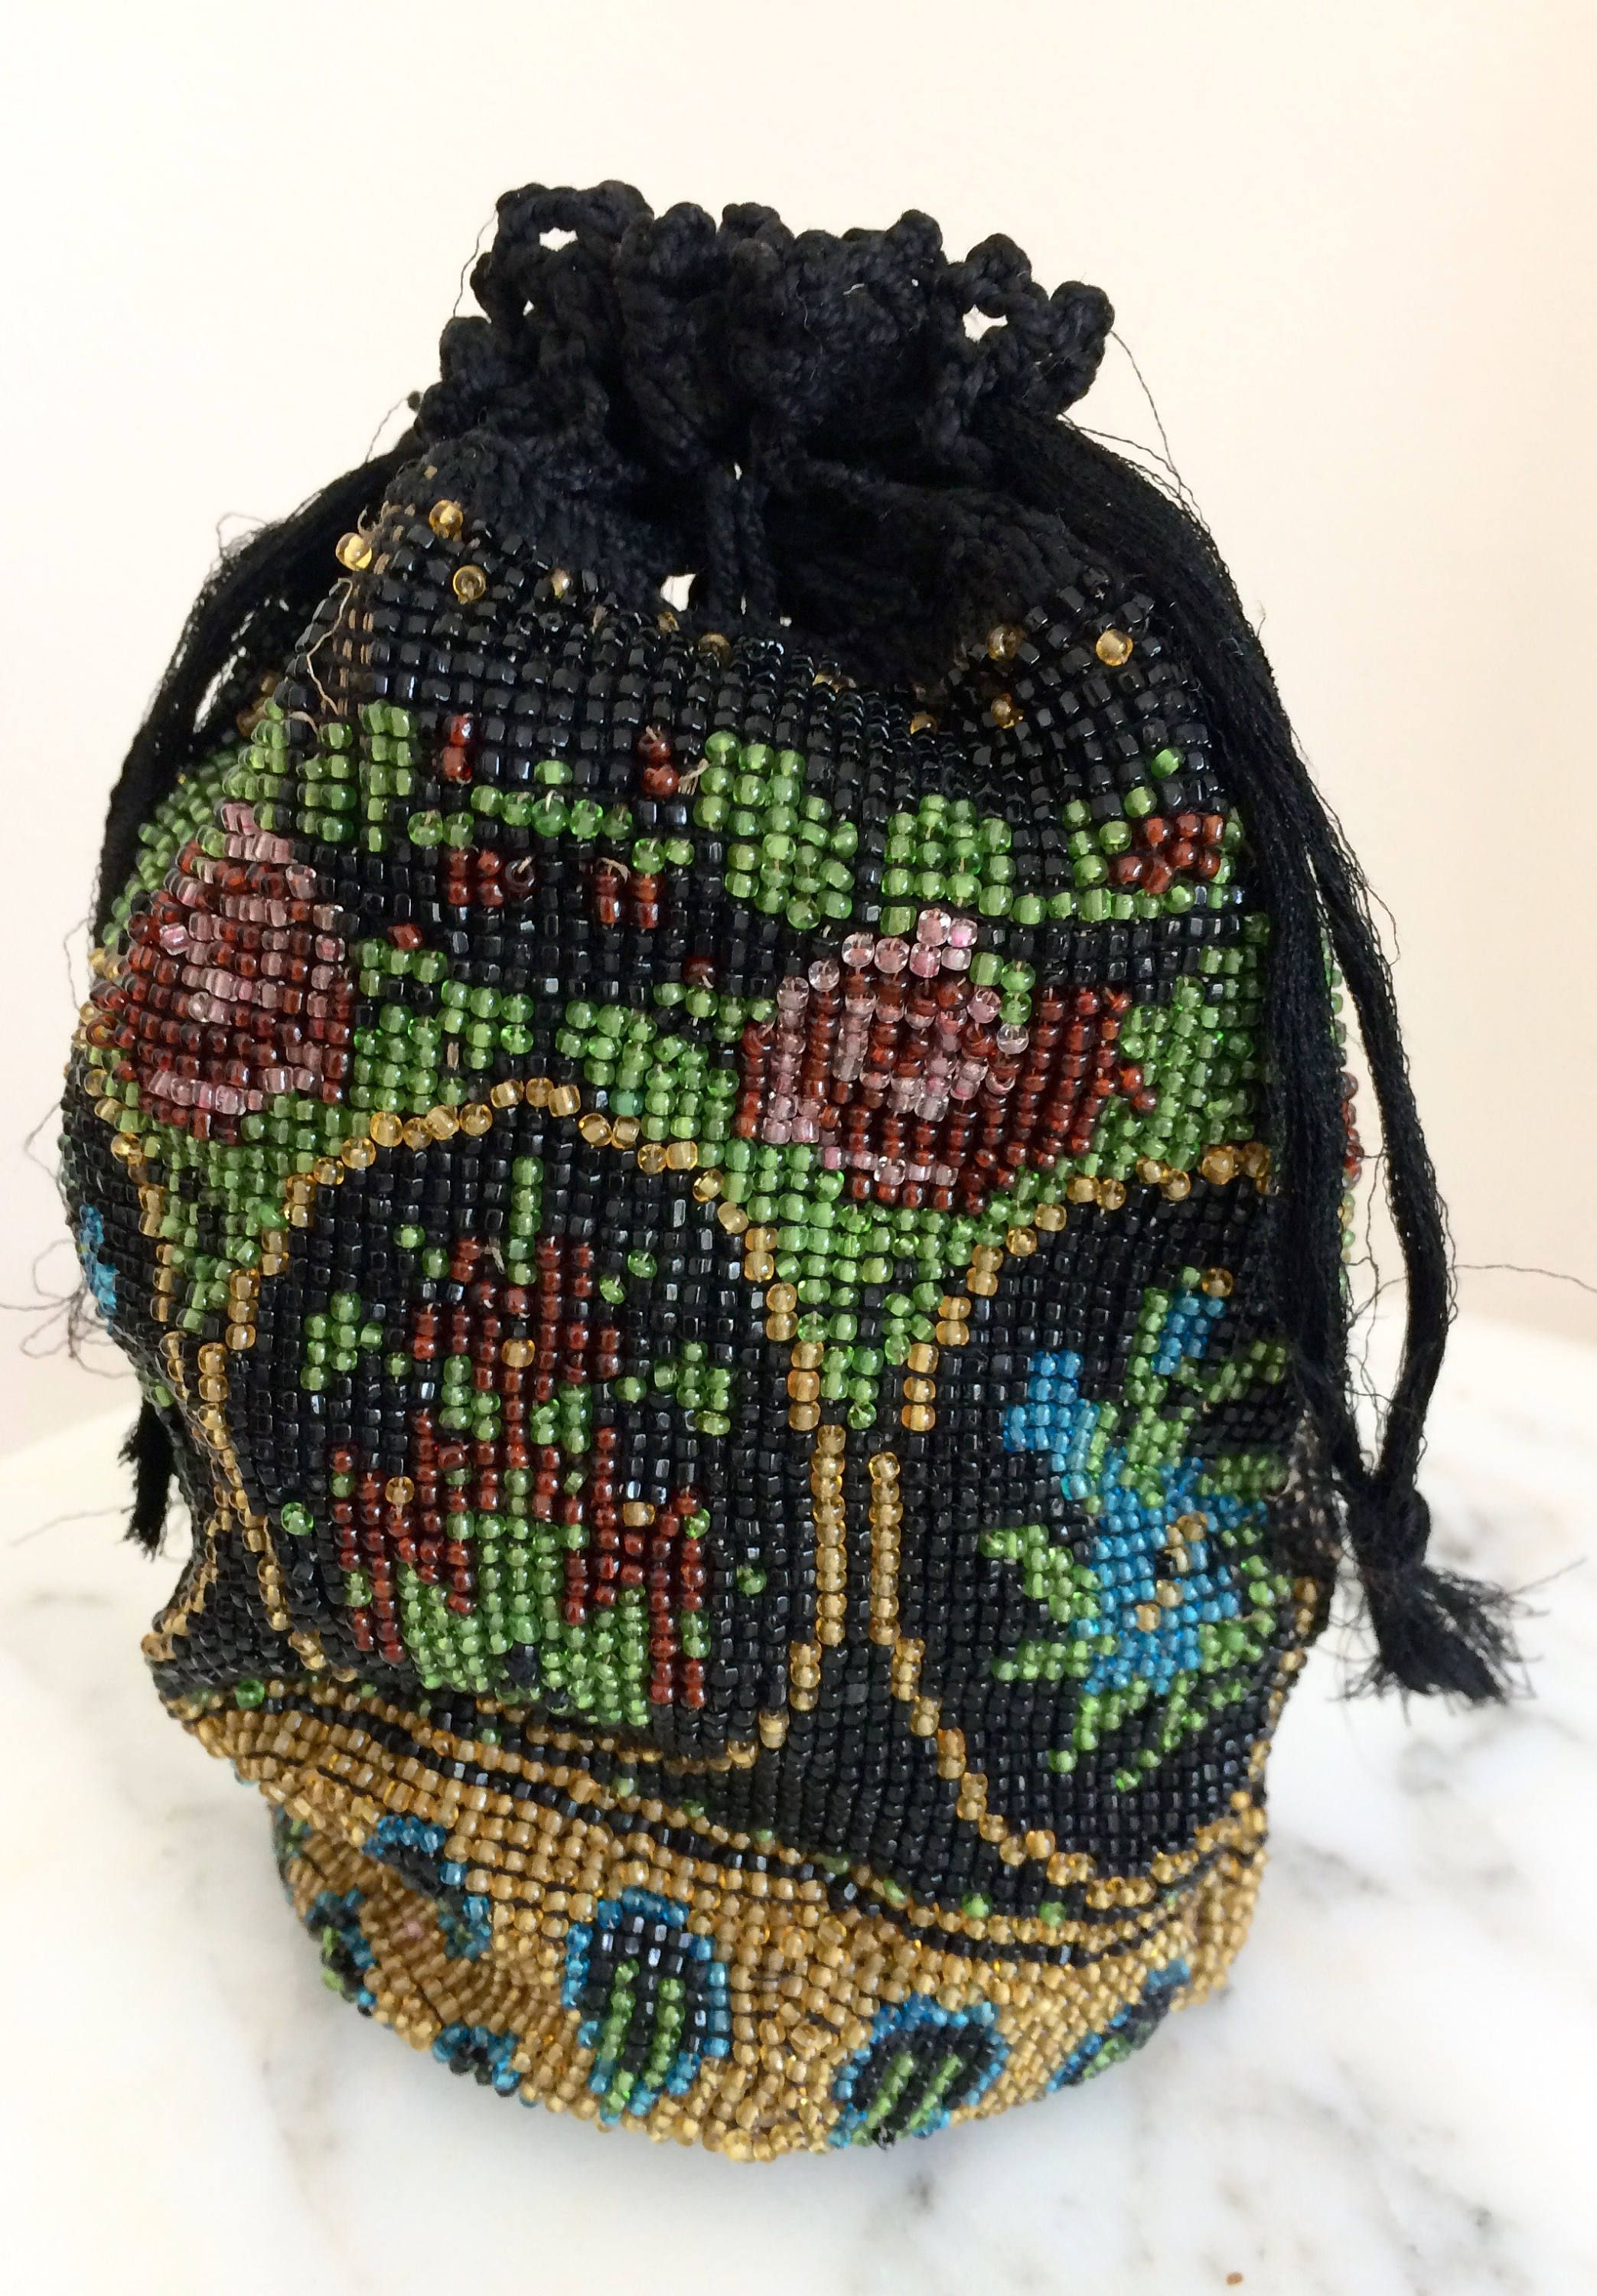 Beaded Evening Clutch Purse 1940/'s Beaded Decorative Change Purse,Vintage Beaded Small Bag Vintage 1950/'s Vintage Black Beaded Coin Purse